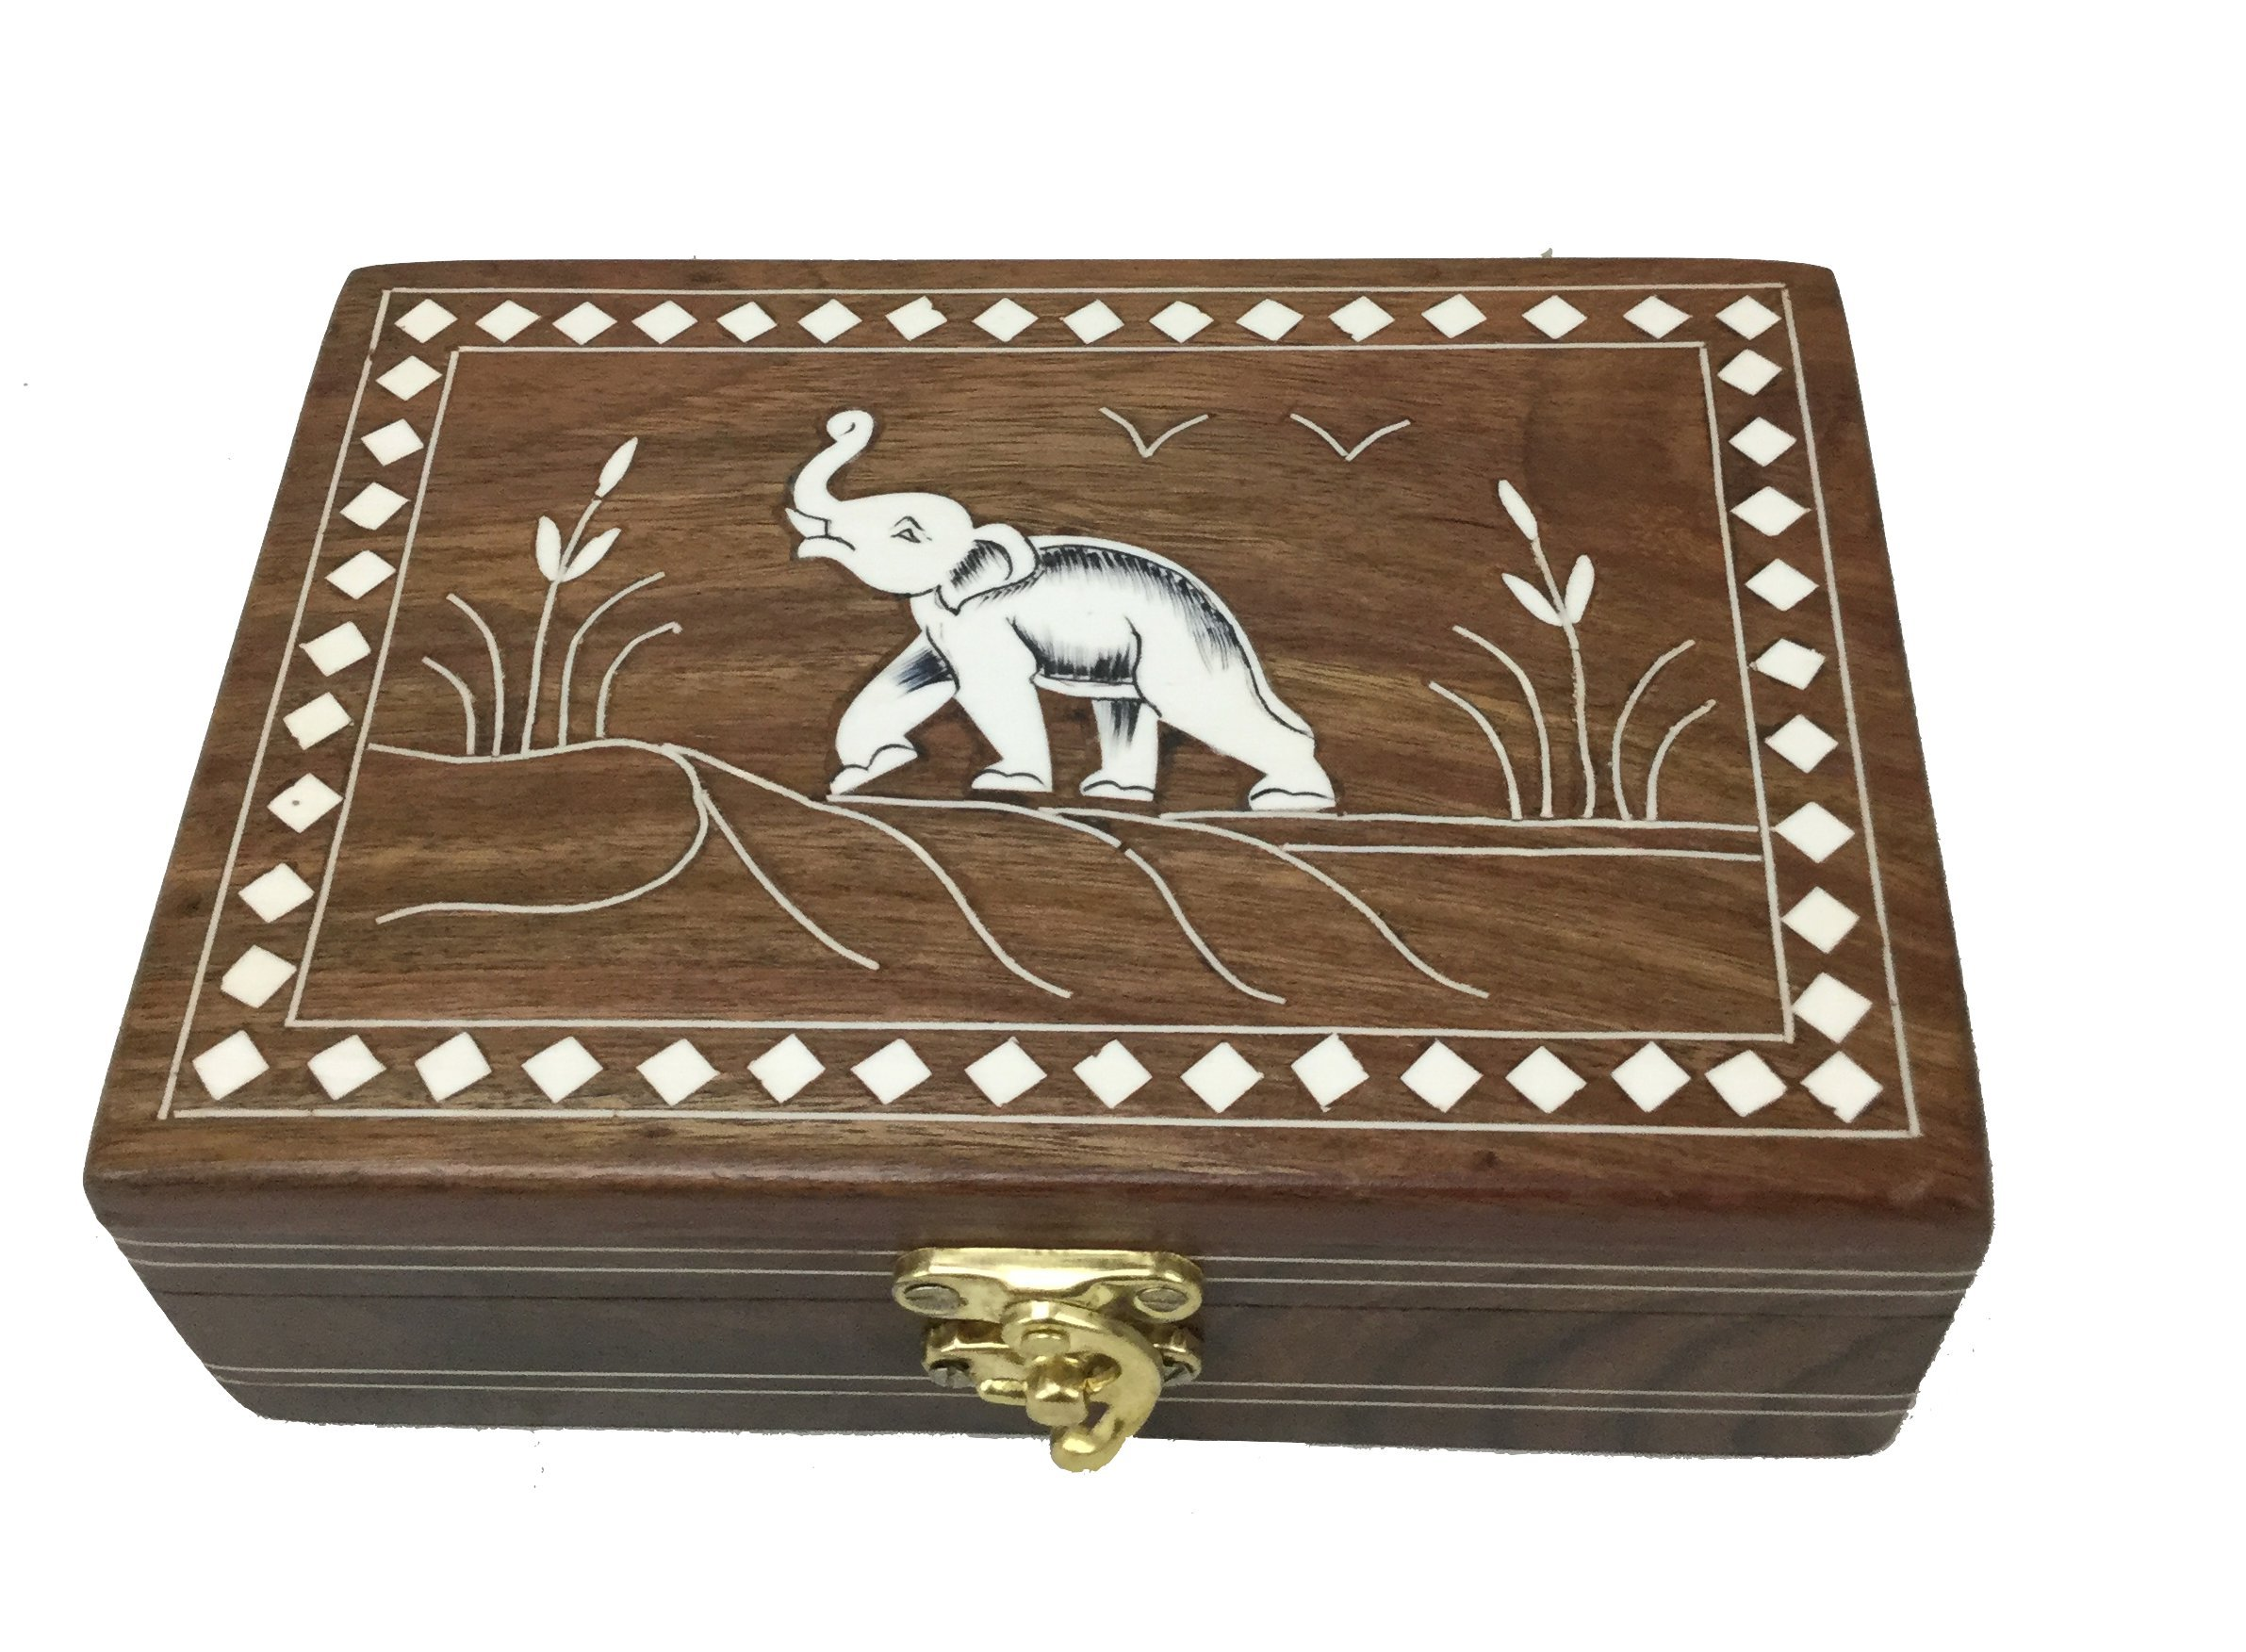 SouvNear Dancing Elephant Wooden Storage Box - Handmade Jewelry Box / Decorative Box / Treasure Chest / Keepsake Box for Women and Men from India